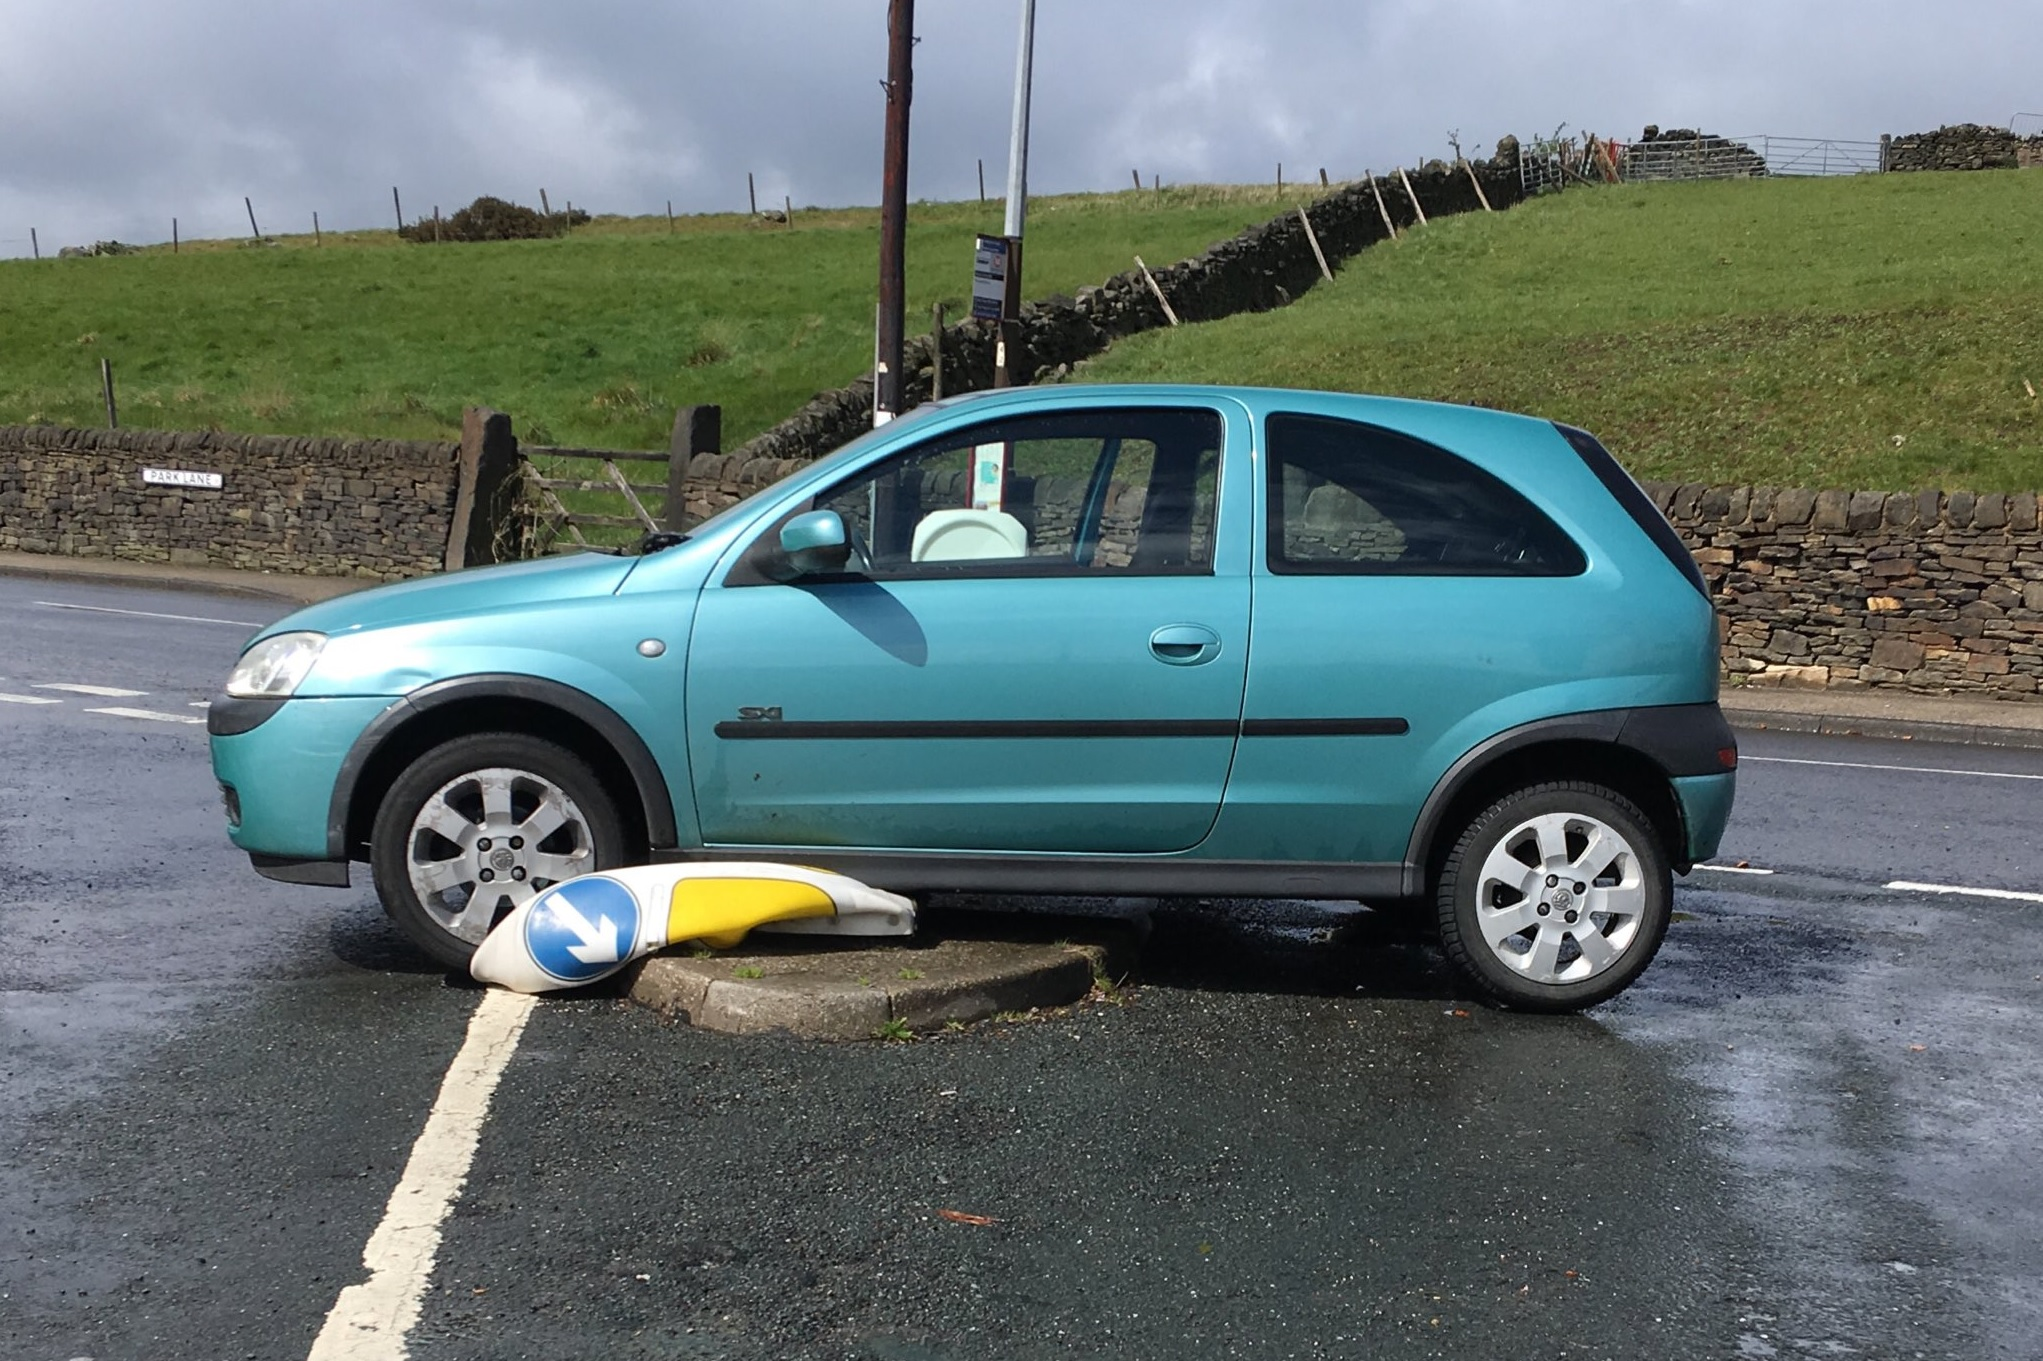 Stolen car seized after crashing in Glen Lee Lane, Keighley